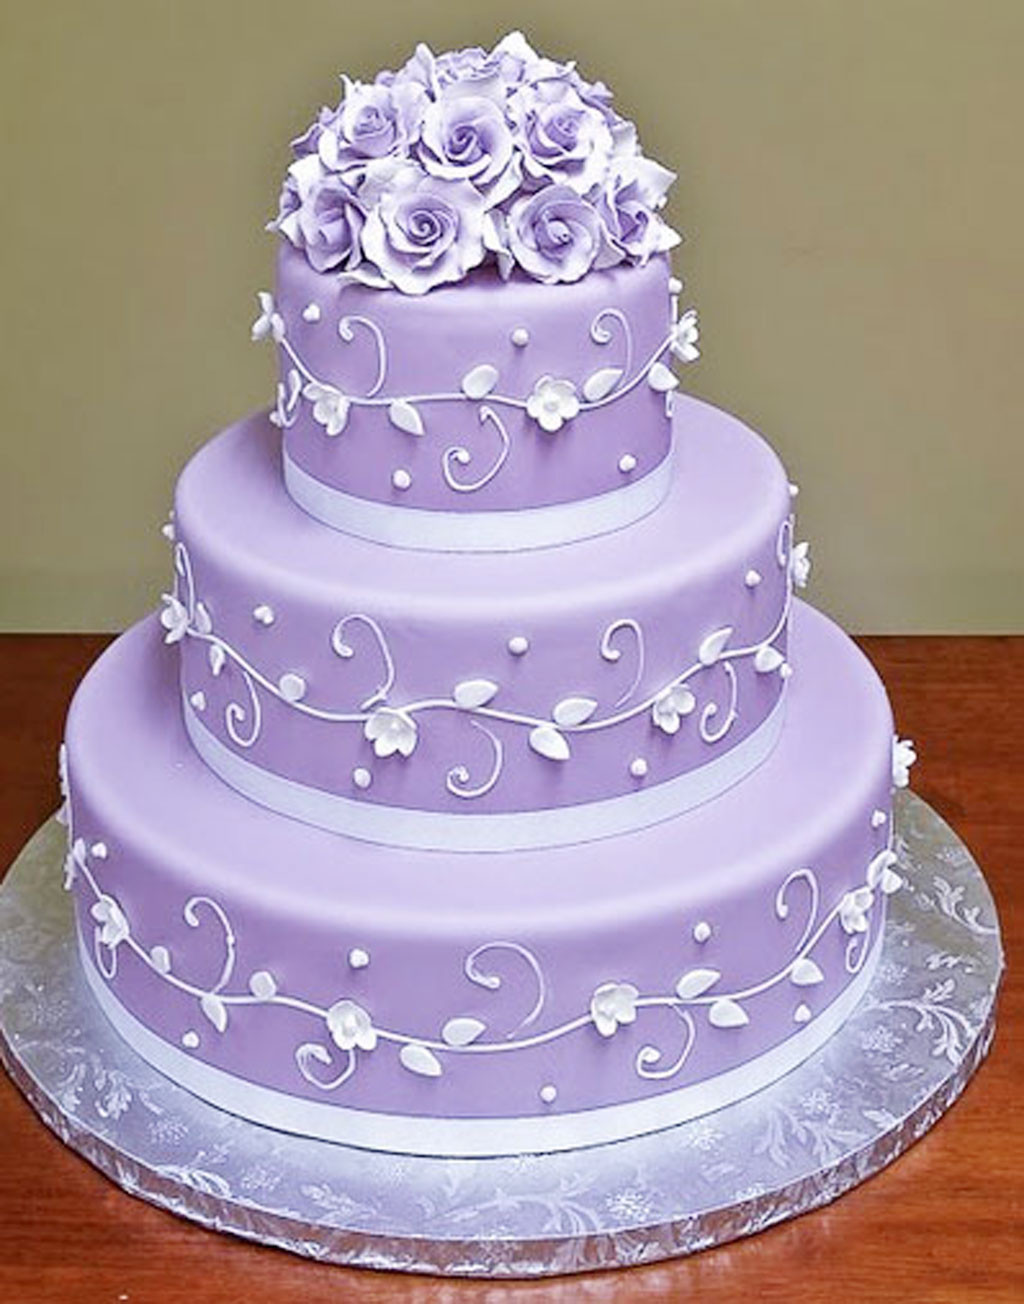 Wedding Cakes Lavender  Lavender Wedding Cakes Wedding Cake Cake Ideas by